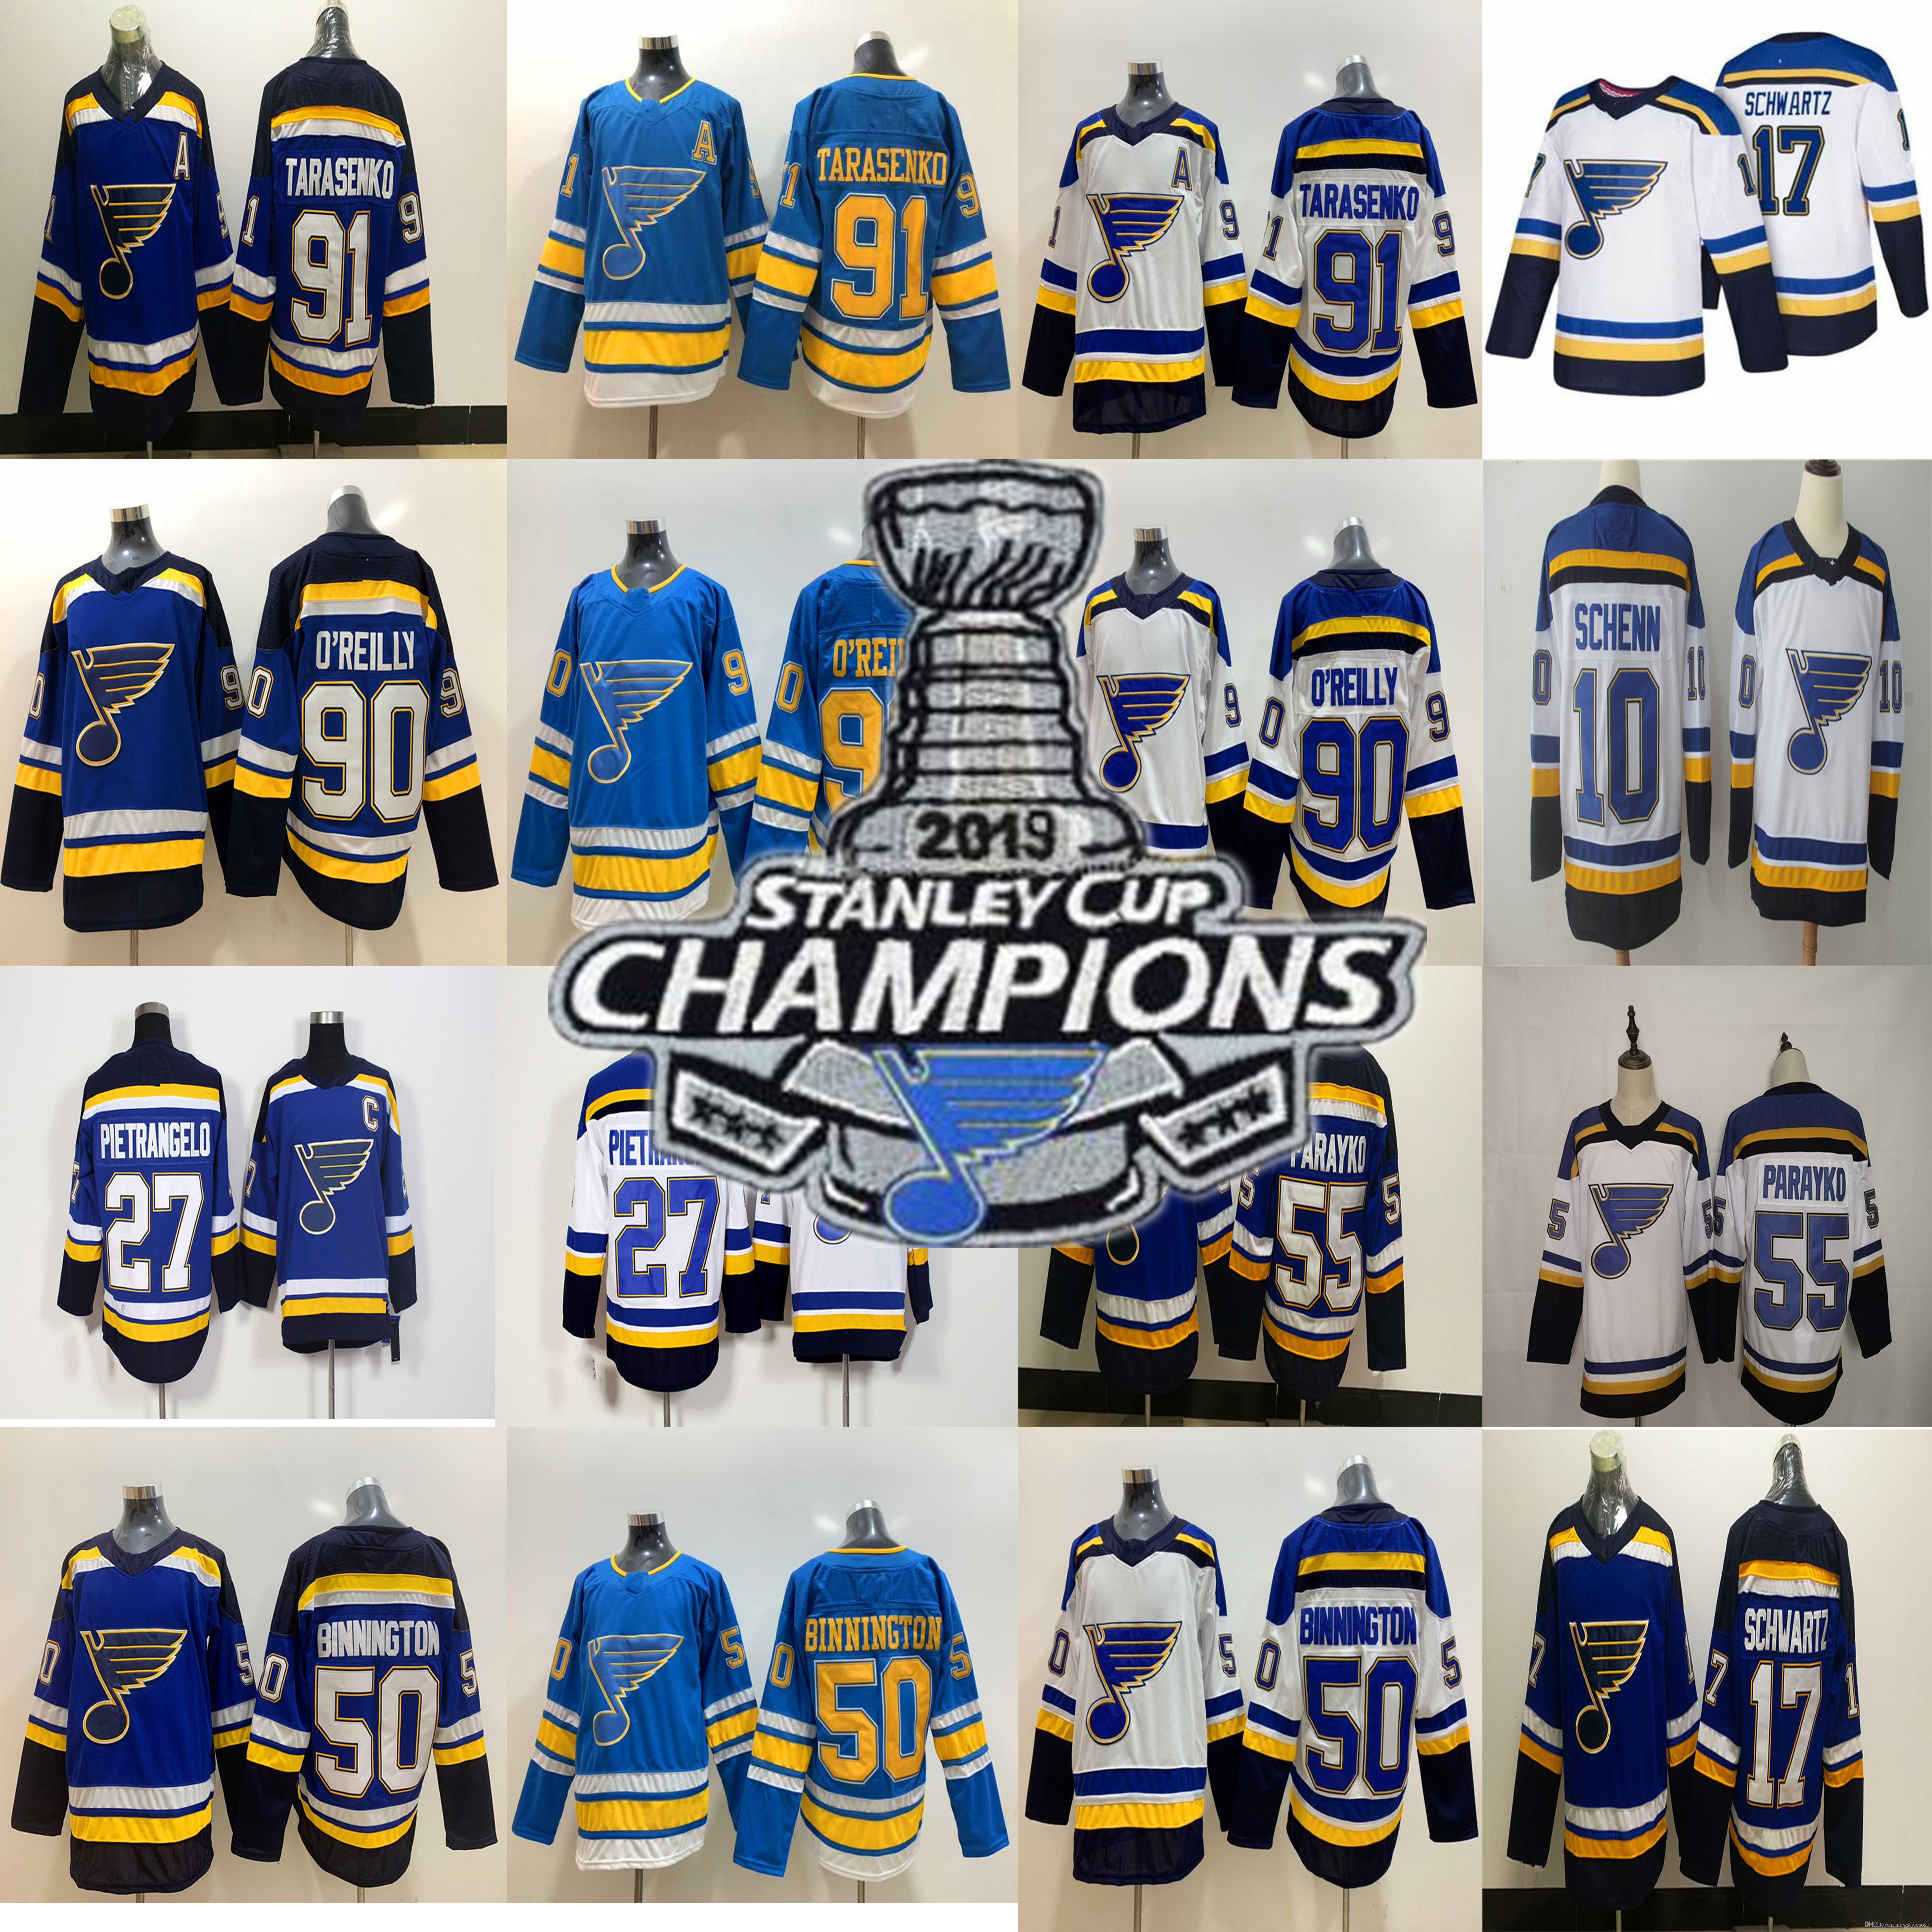 2019 Stanley Cup Champions patch di St. Louis Blues 27 Alex Pietrangelo 55 Colton Parayko 90 Ryan O'Reilly 91 Vladimir Tarasenko Hockey maglie